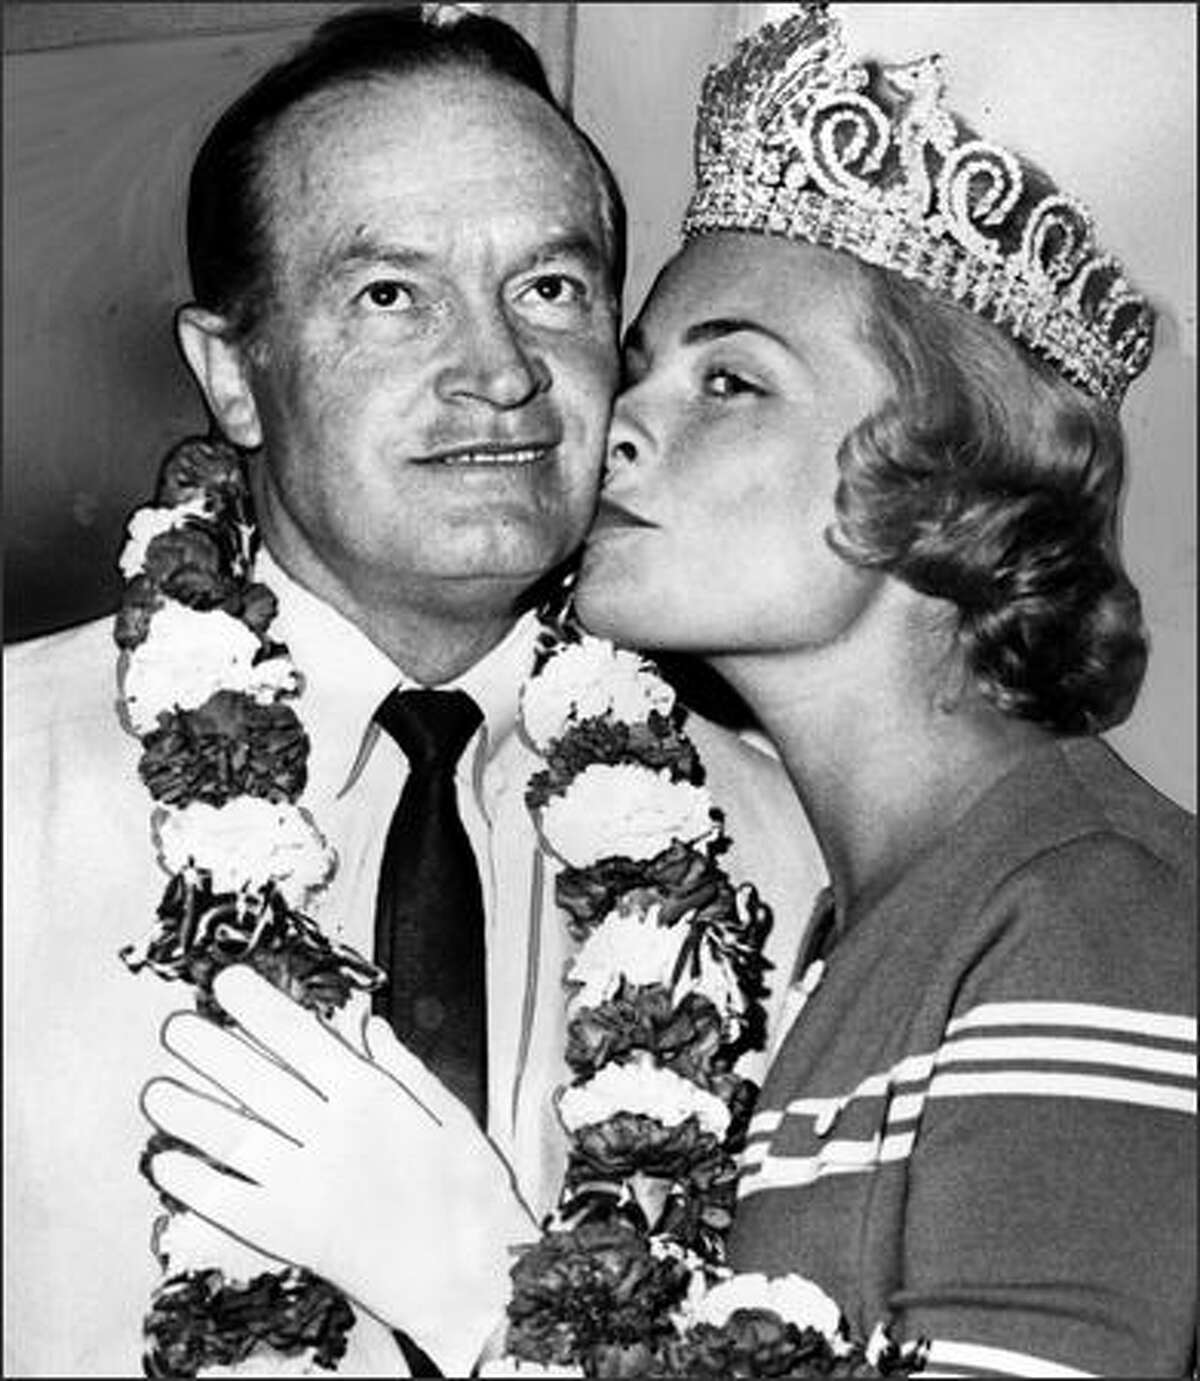 After the 1962 World's Fair put Seattle on the map, celebrities doing shows here often took part in Seafair. In 1963, Bob Hope was bussed by Seafair Queen Arlene Hinderlie and served as Honorary Grand Marshal for the Torchlight Parade. (P-I photo by Phil H. Webber)